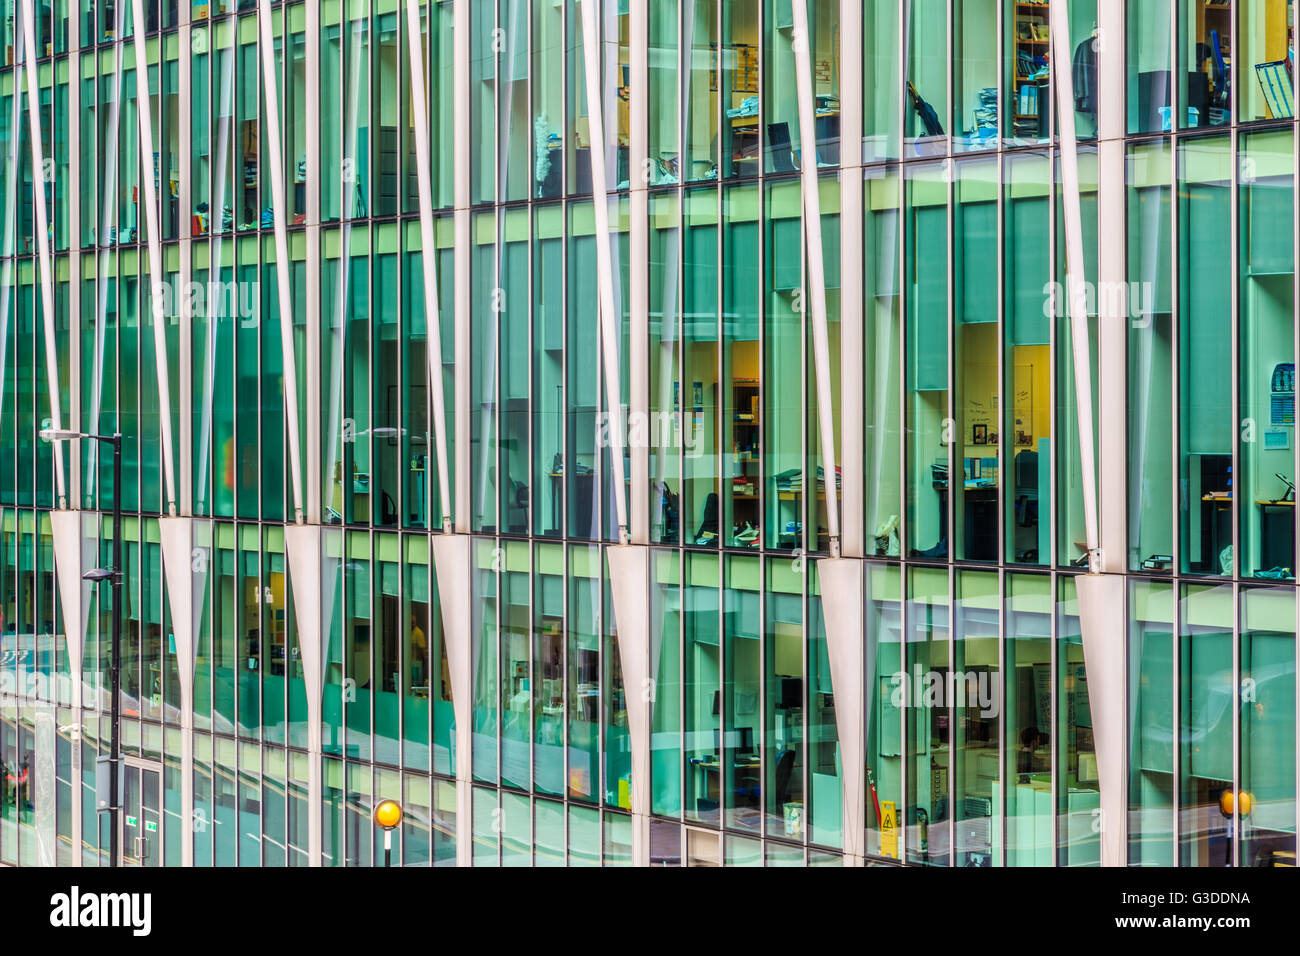 London, UK - June 03, 2017 - People working in an modern office building - Stock Image